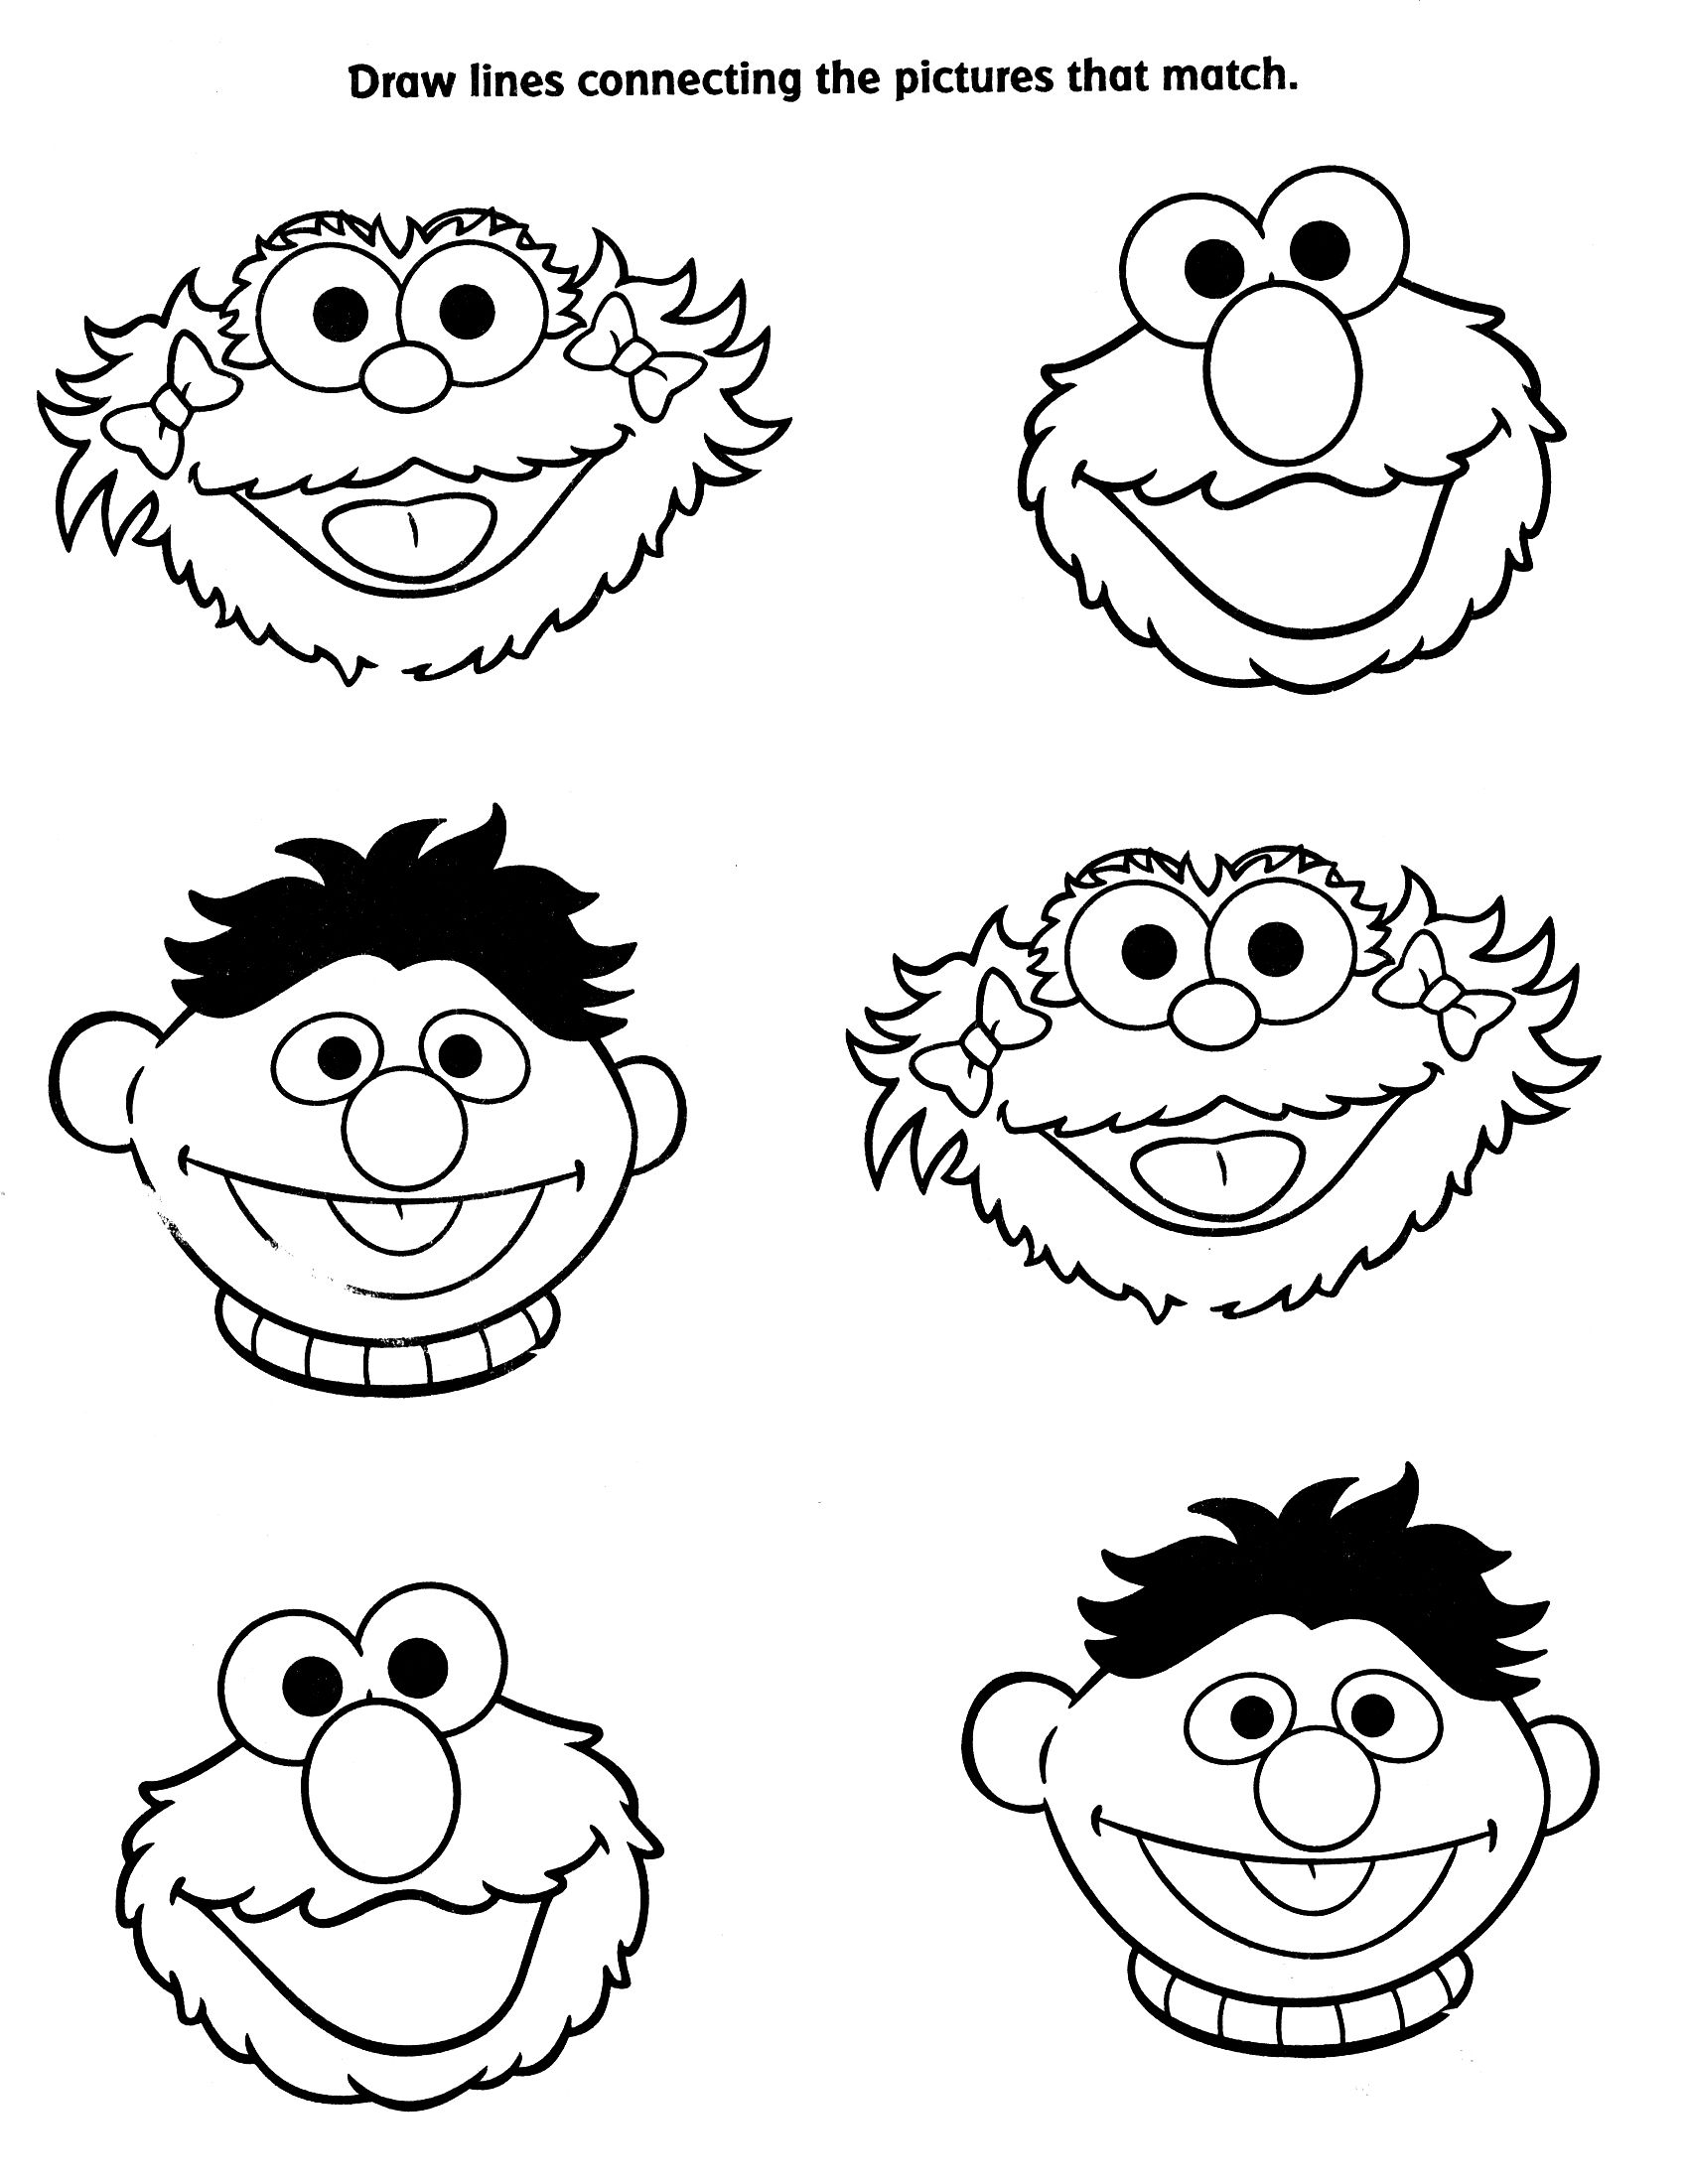 Sesame Street Sign Coloring Page Sesame Street Paintings Search Result At Paintingvalley